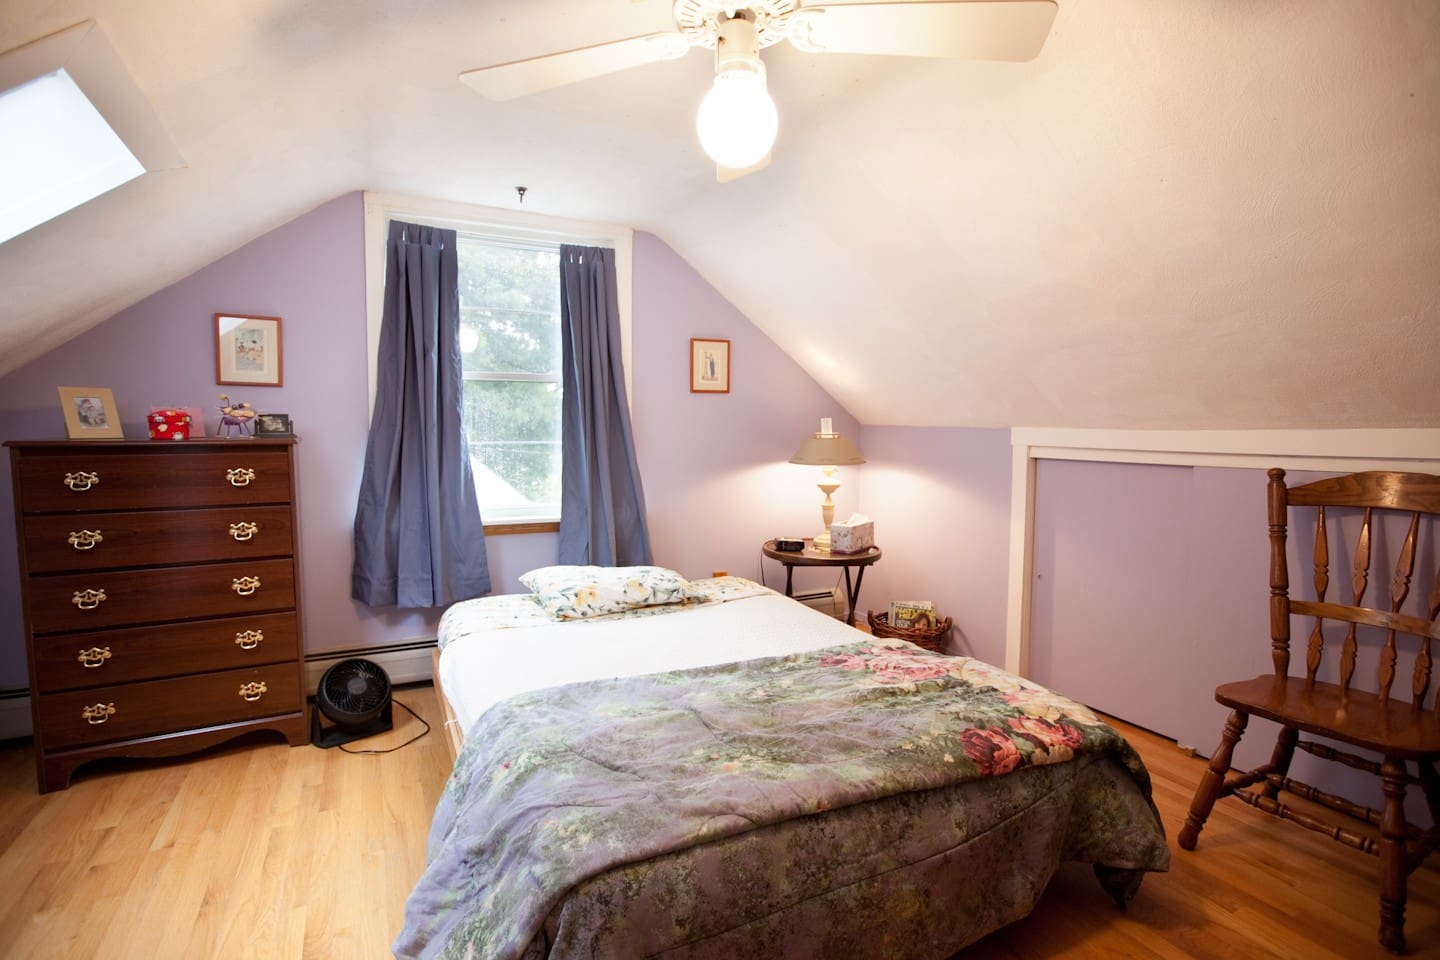 Guest bedroom (second bed not seen in this view).